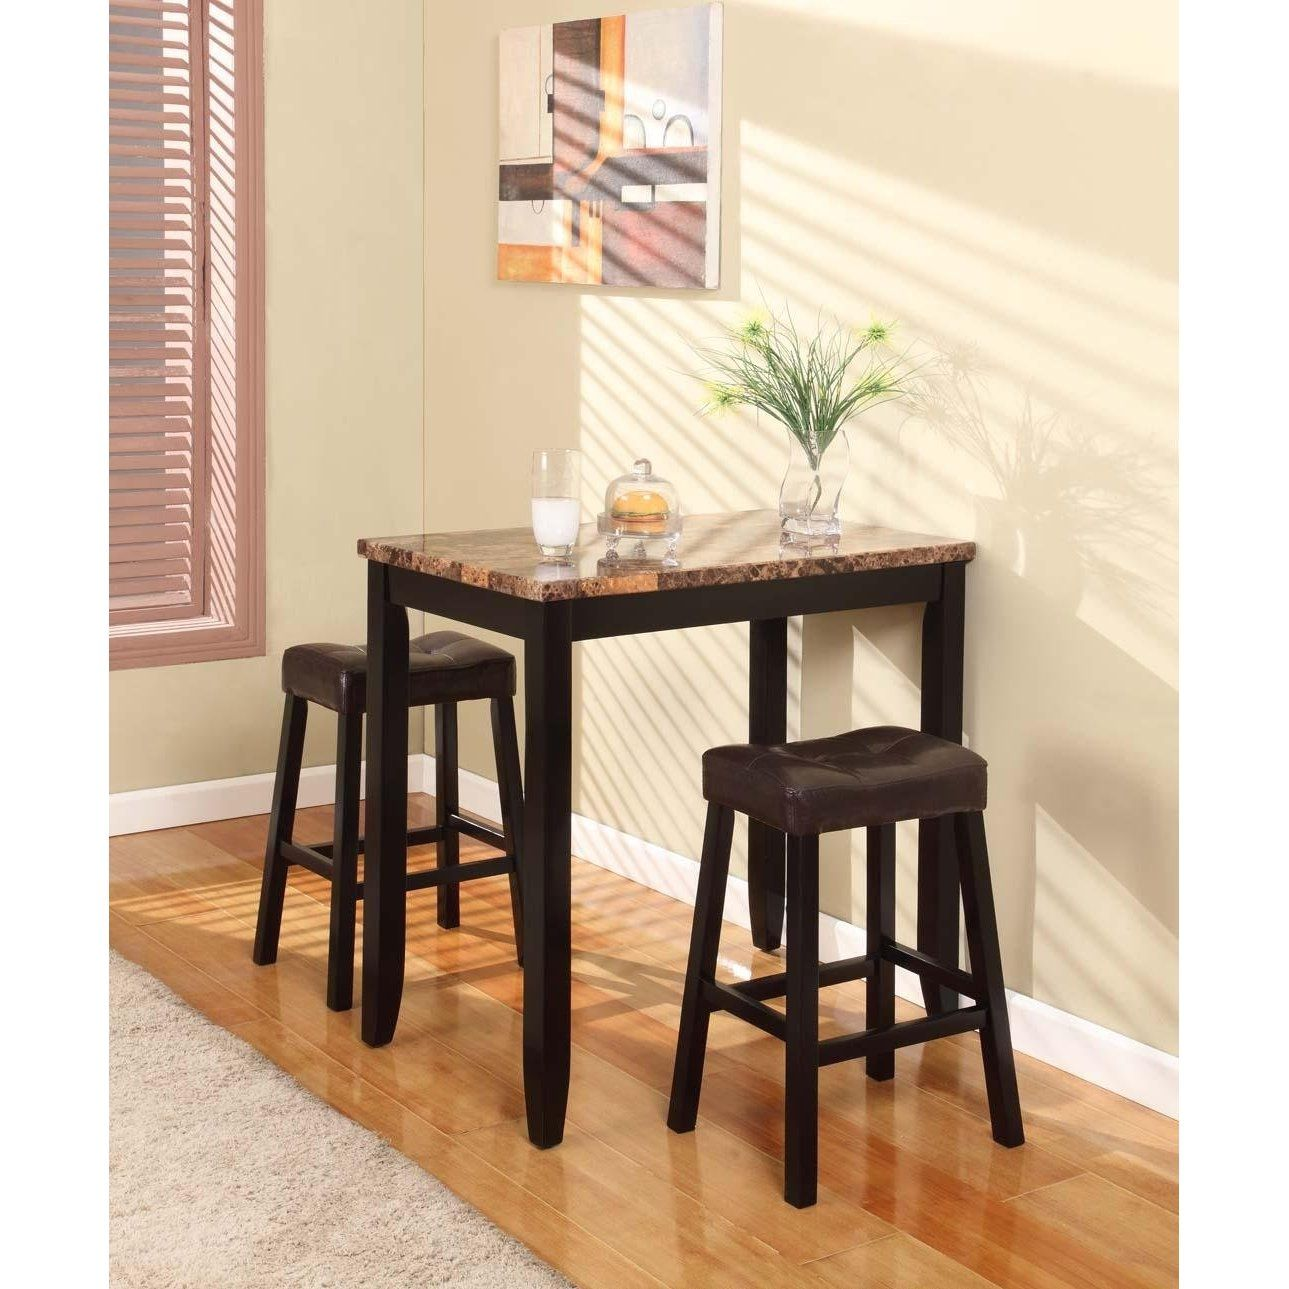 3 Pc Counter Height Glossy Print Marble Breakfast Table With Stools   The  Table Features A